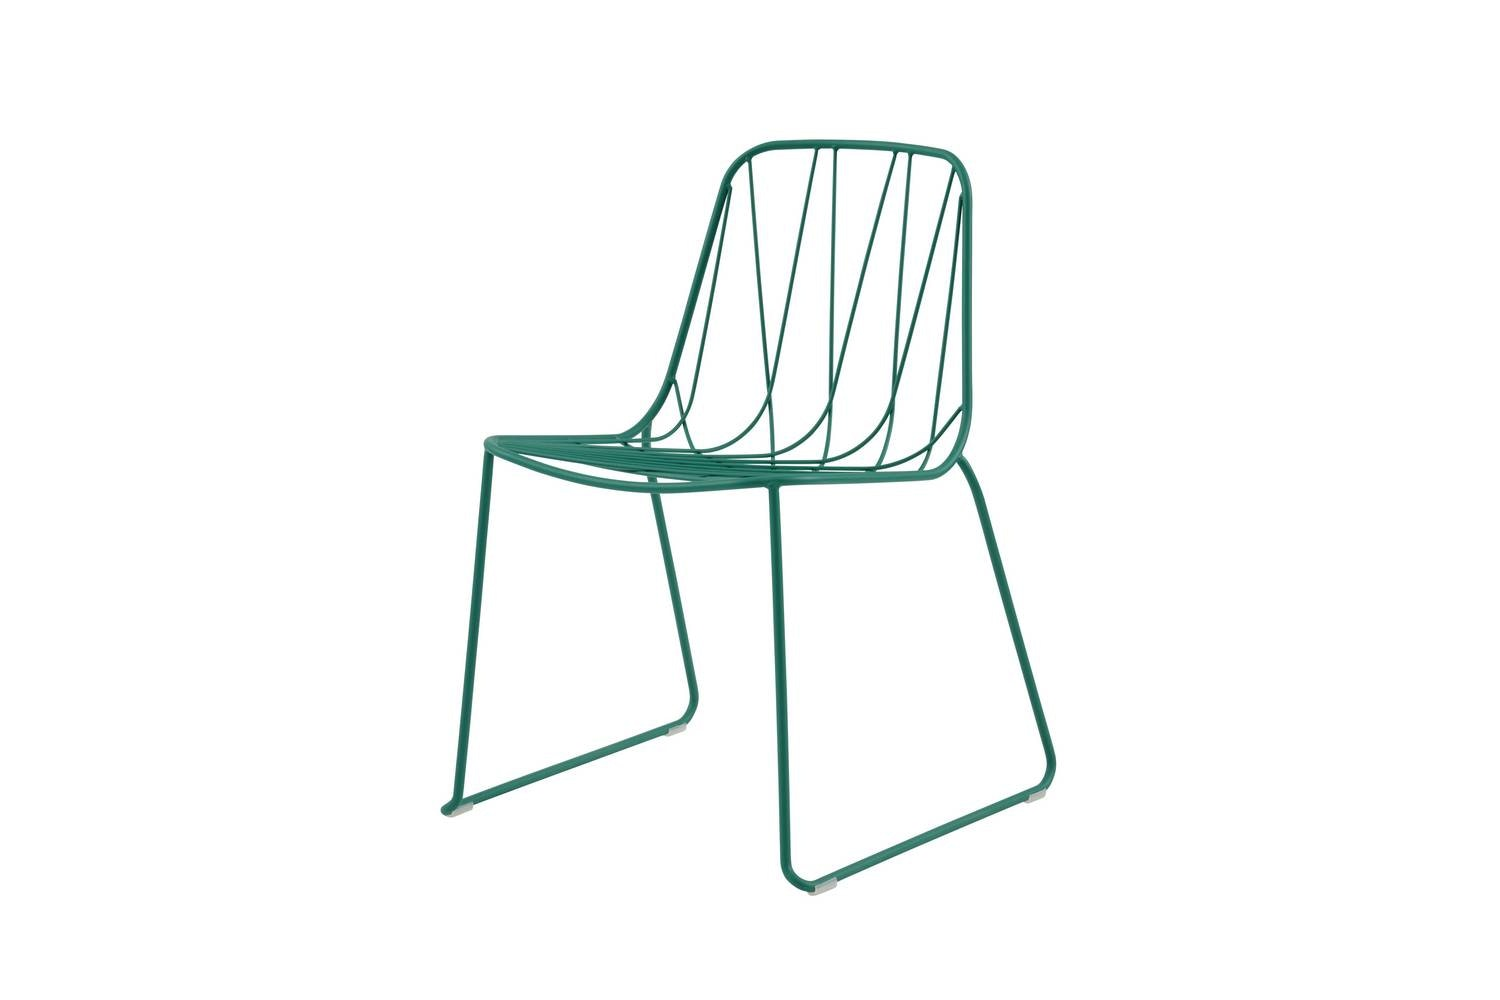 Chee Chair by Tom Fereday for SP01